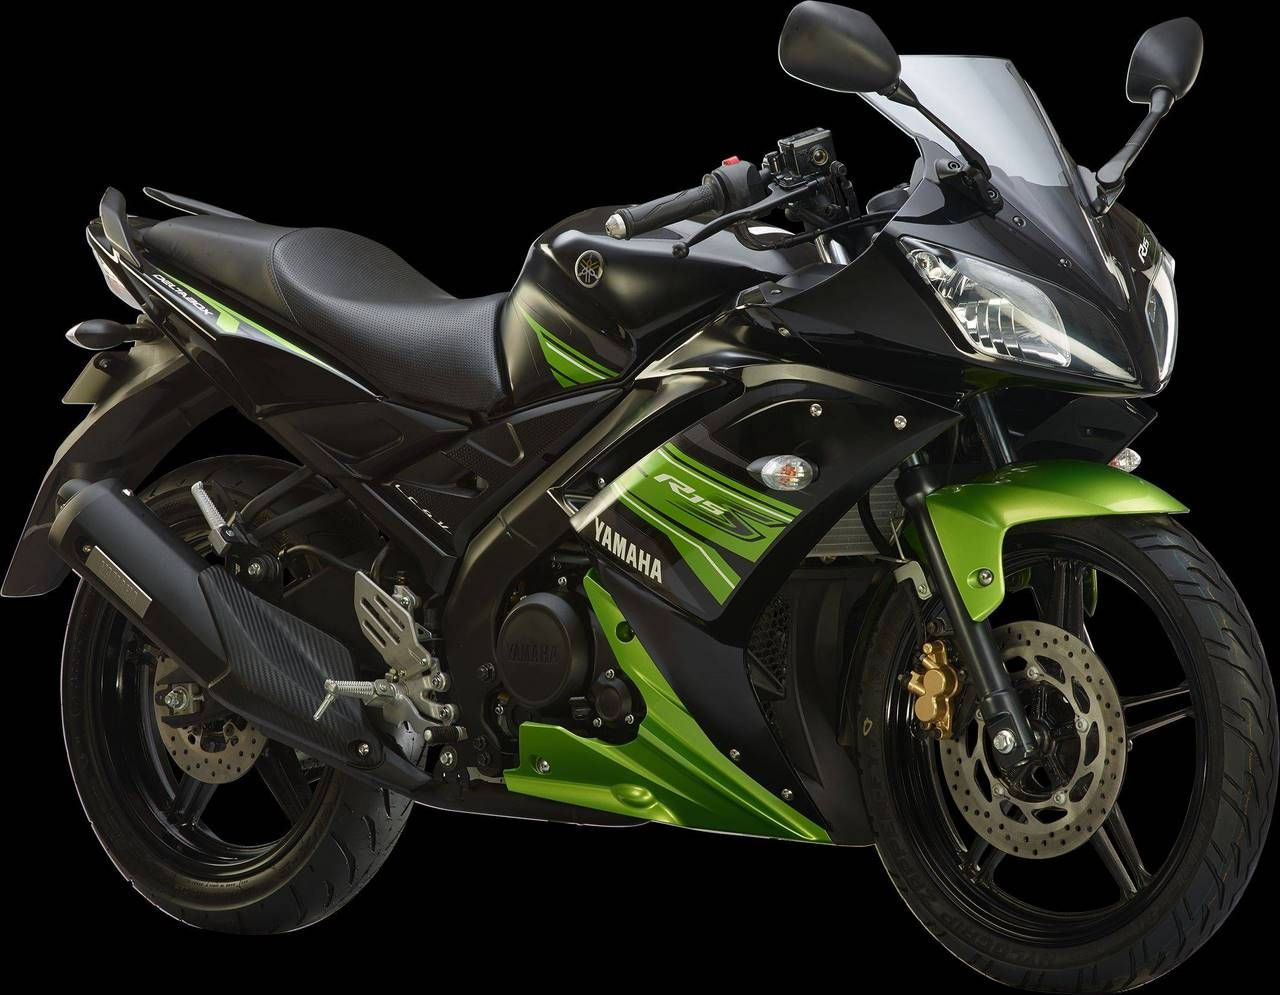 Yamaha R15 S Black with green | Places to Visit | Yamaha yzf, Yamaha